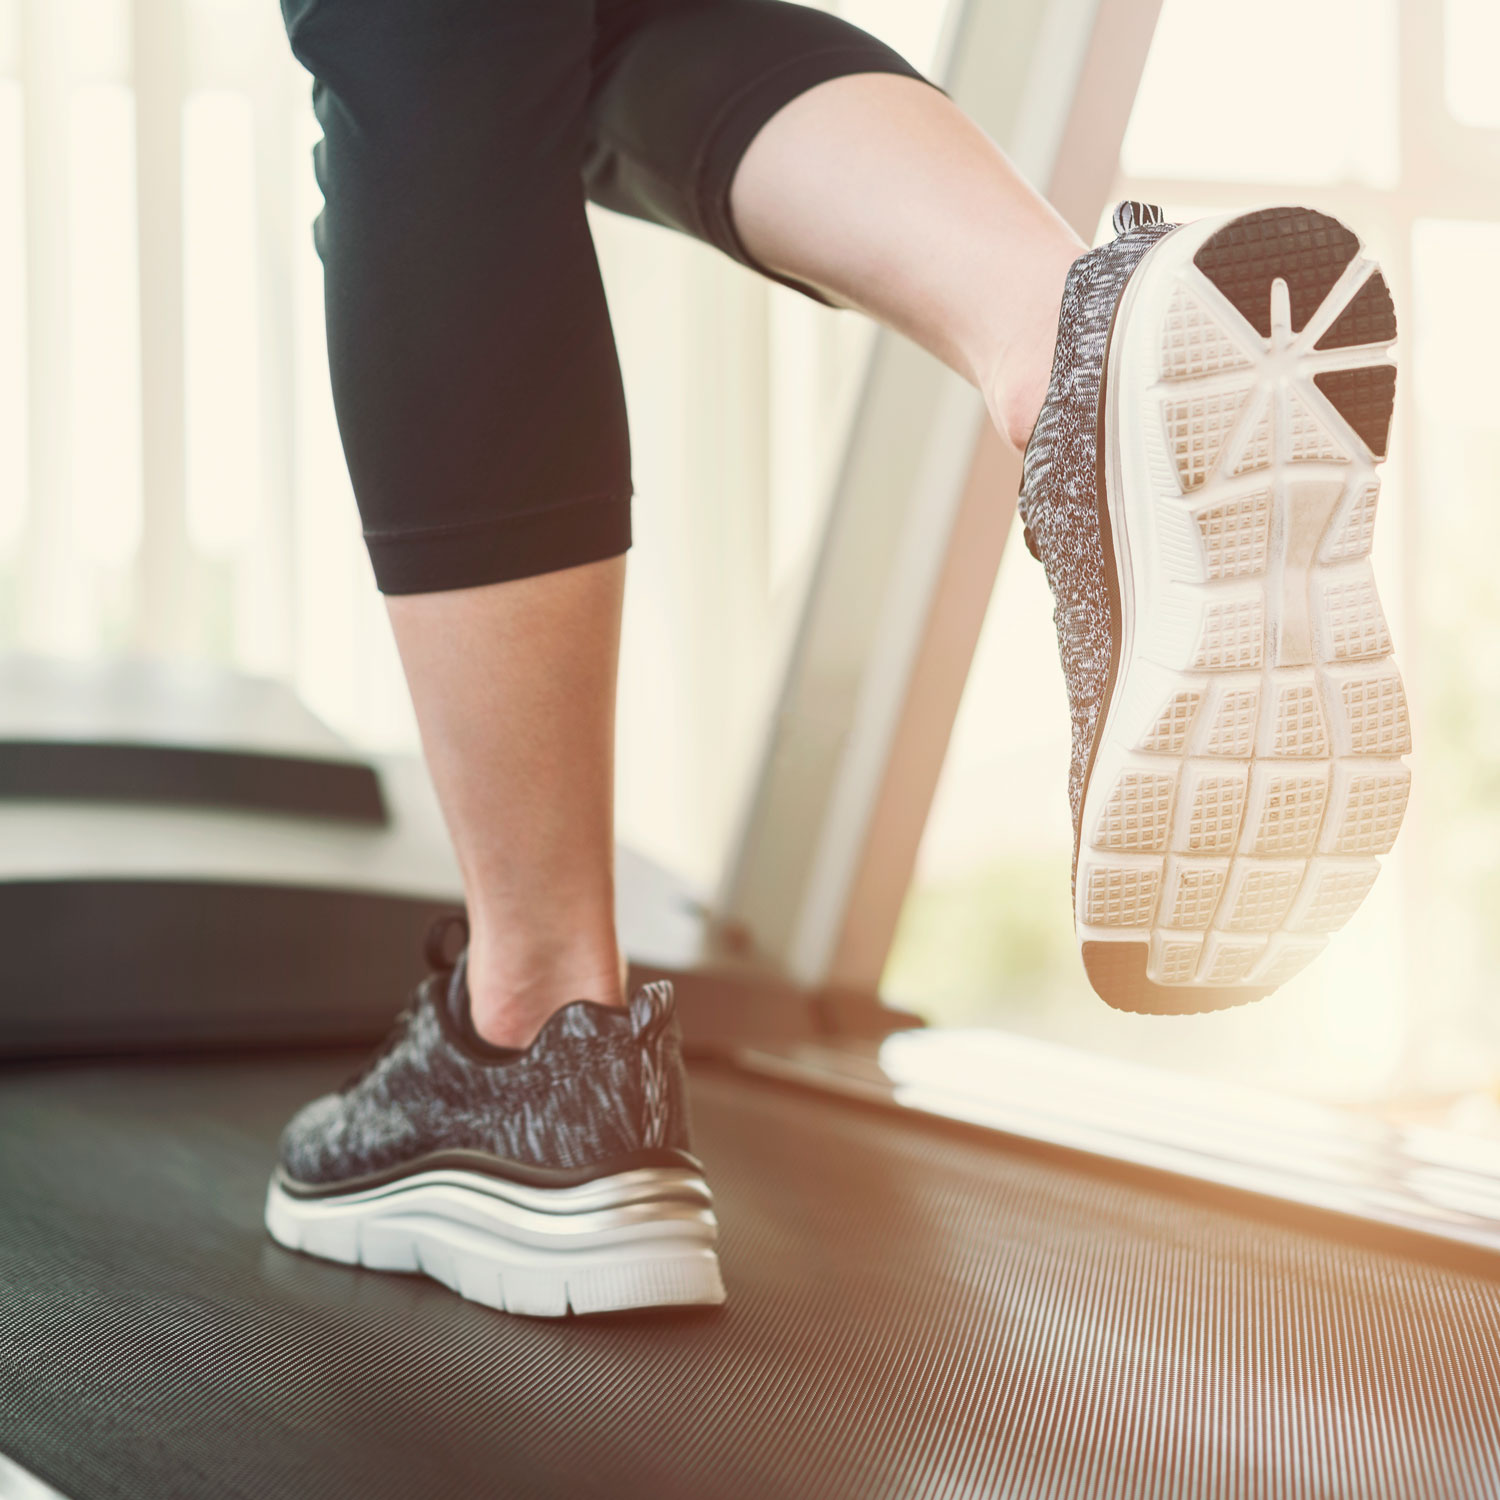 The #1 Tweak to Make to Burn More Calories While Working Out, According to Research